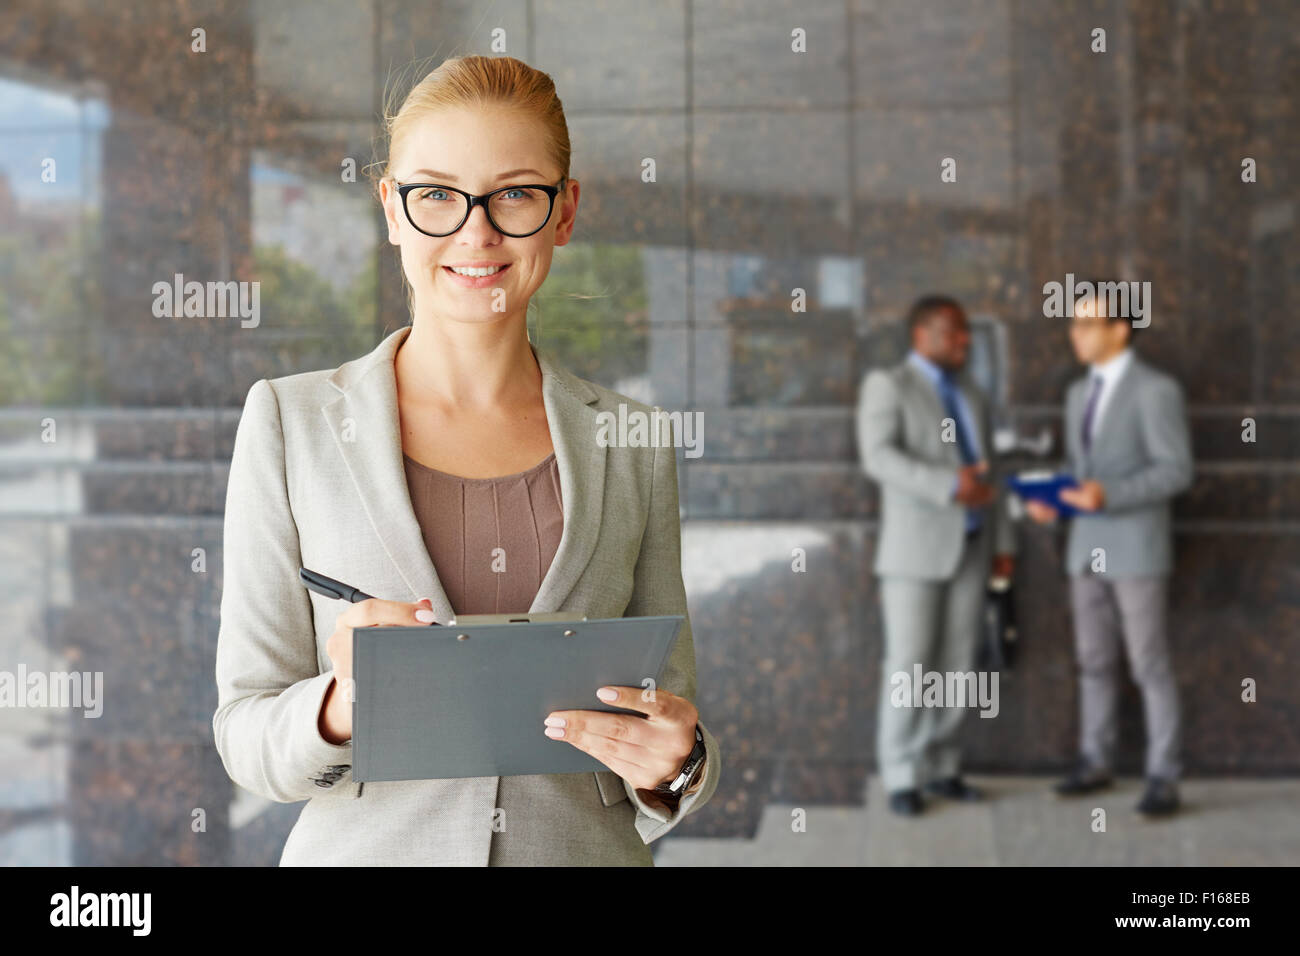 Young seriously looking businesswoman smiling at camera Stock Photo